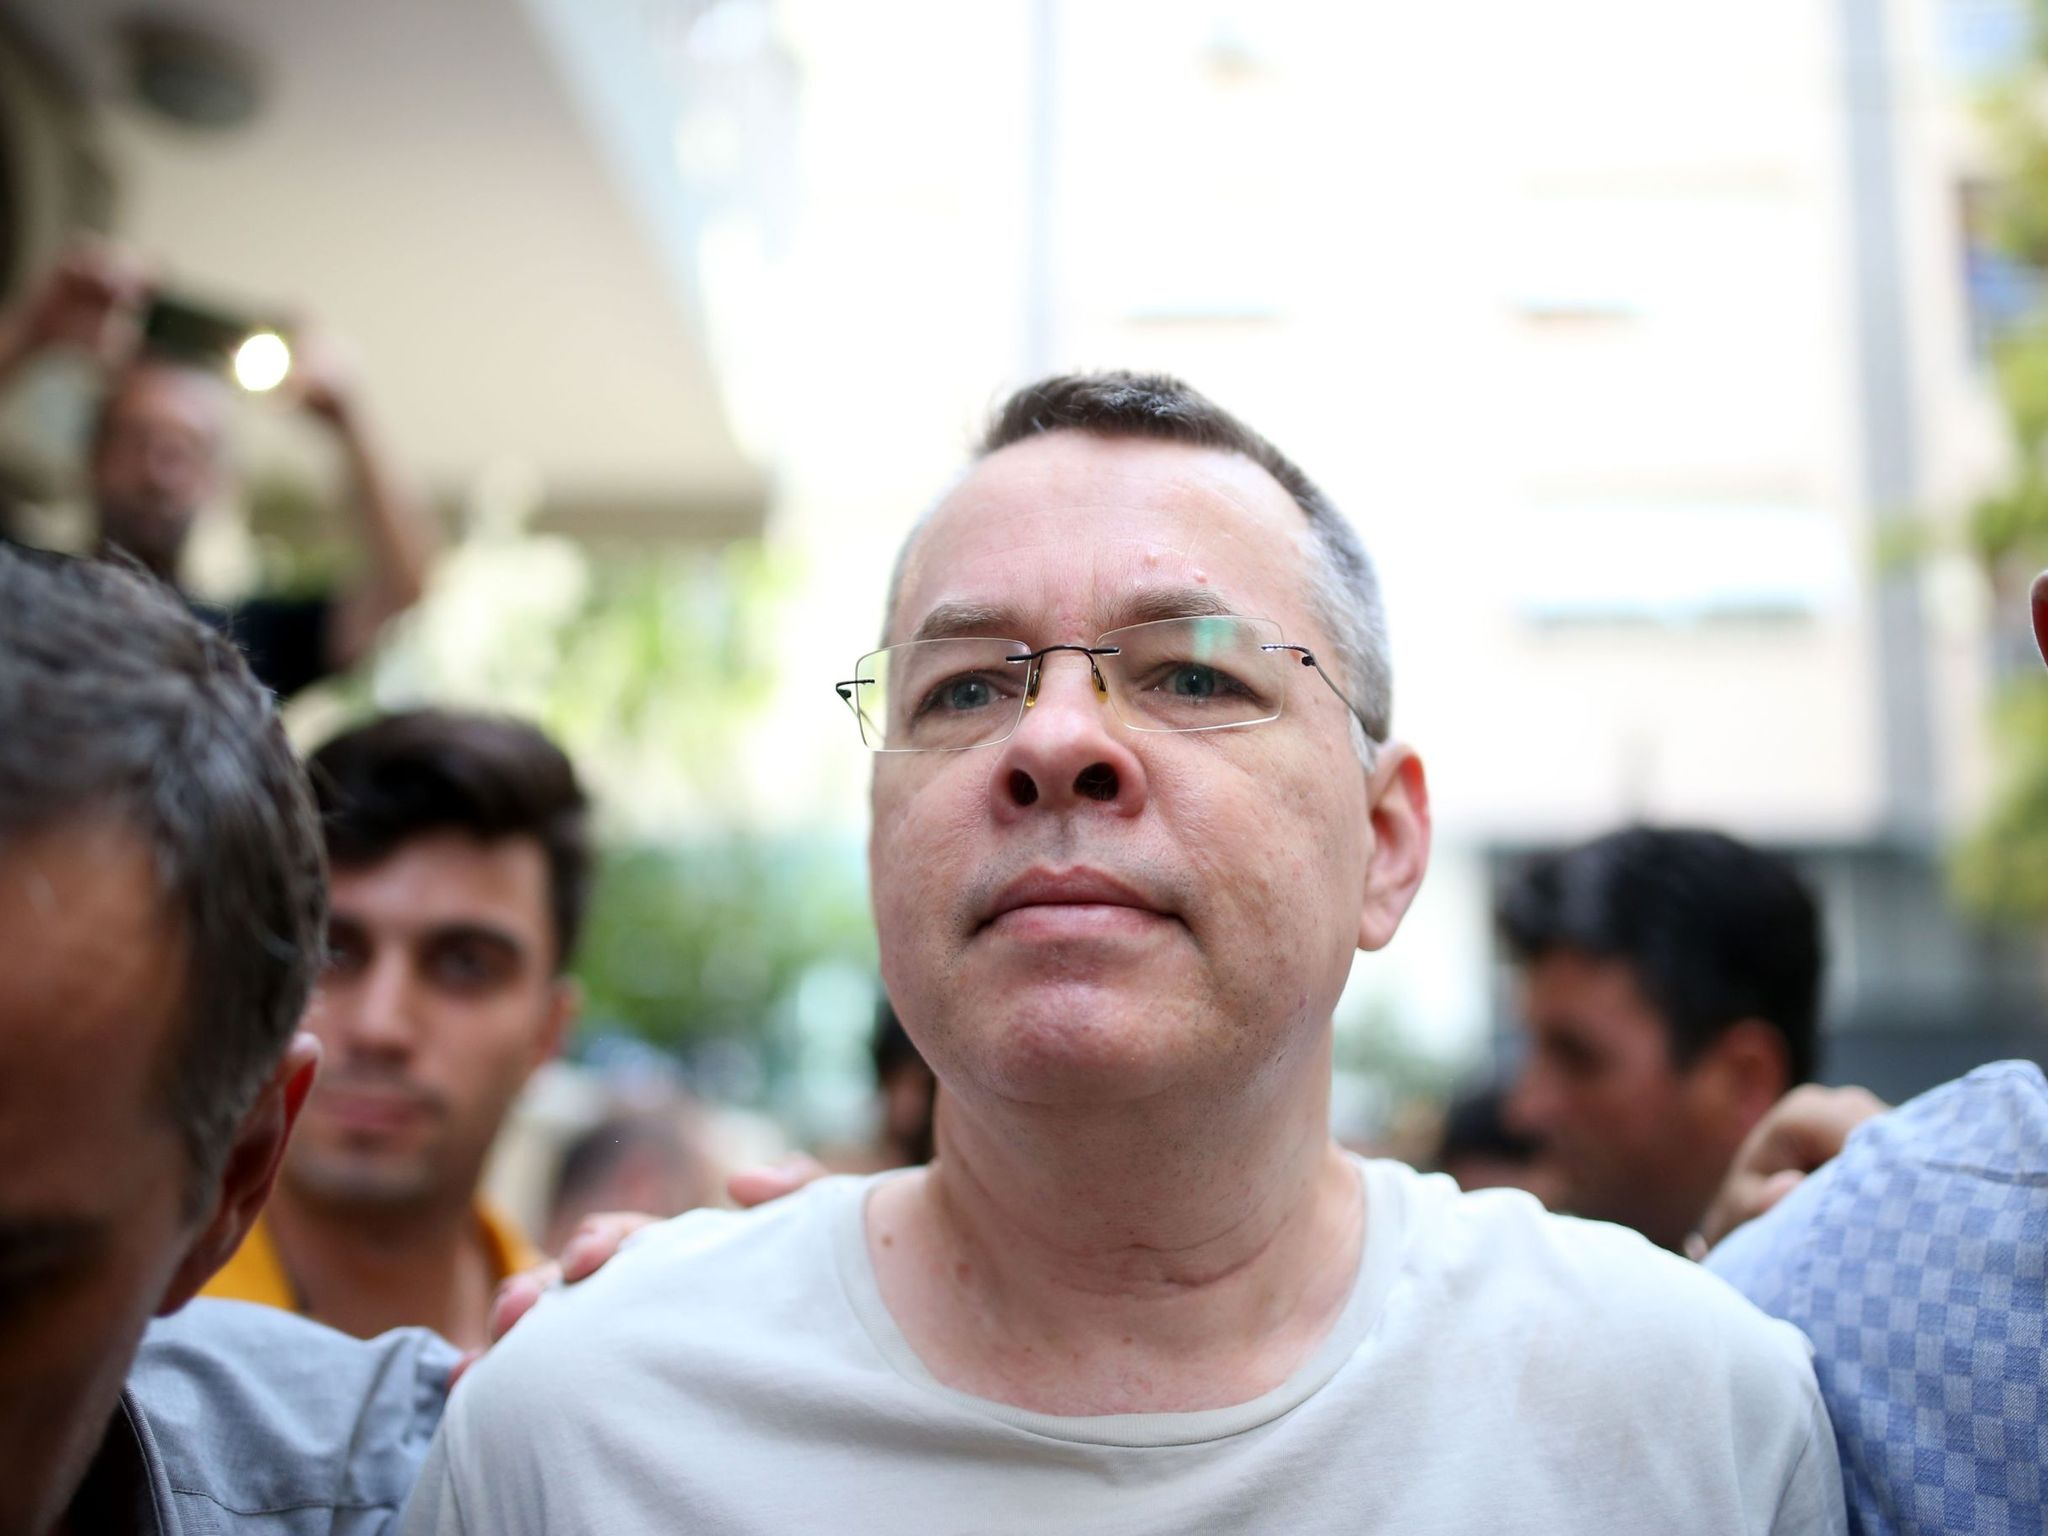 US Pastor Andrew Brunson imprisoned in Turkey faces a major week as speculations swirl that he could be granted his freedom and returned to his family